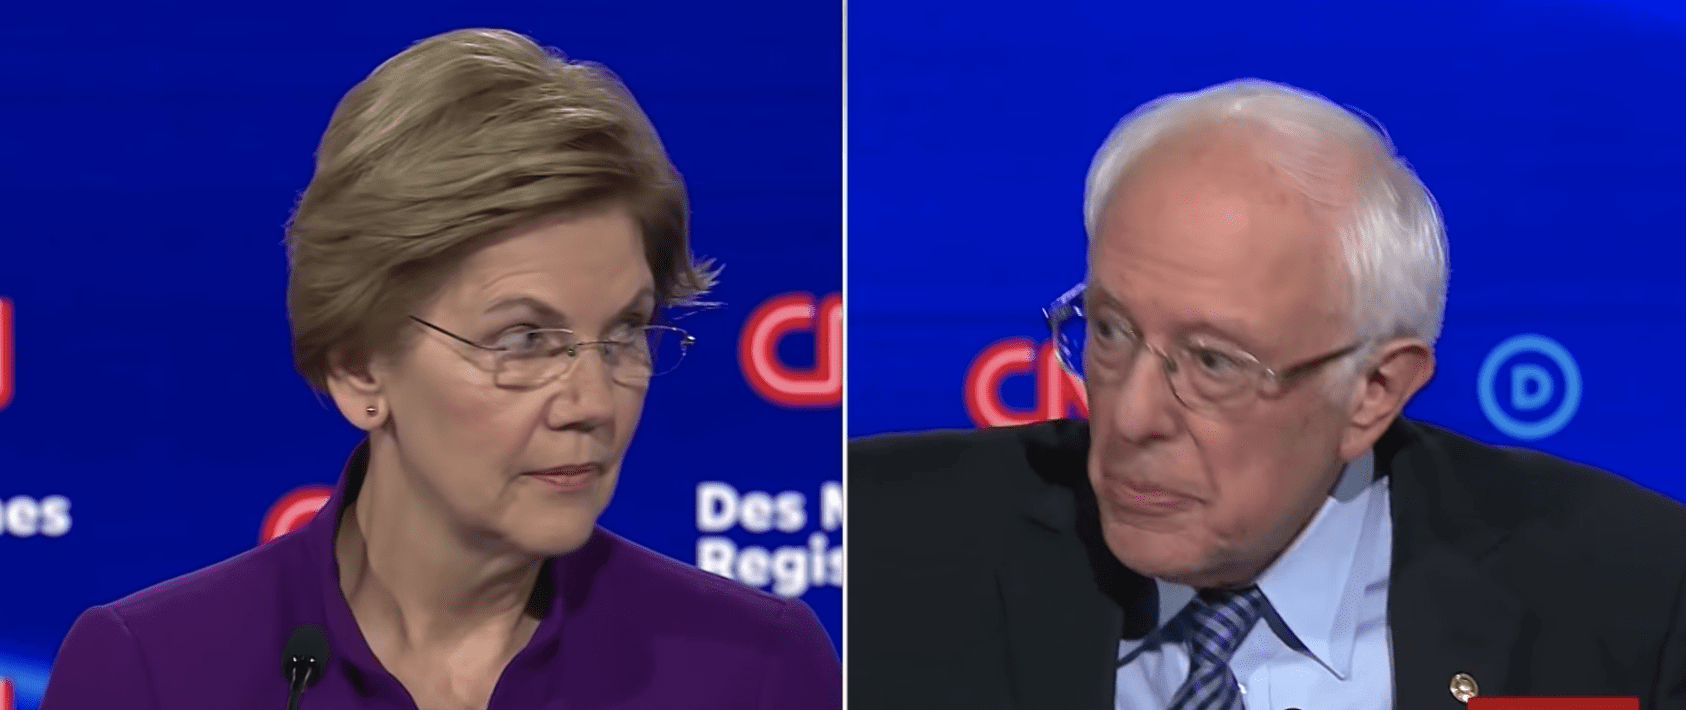 The Worst Moment of Last Night's Democratic Debates | The American Spectator | Politics Is Too Important To Be Taken Seriously.